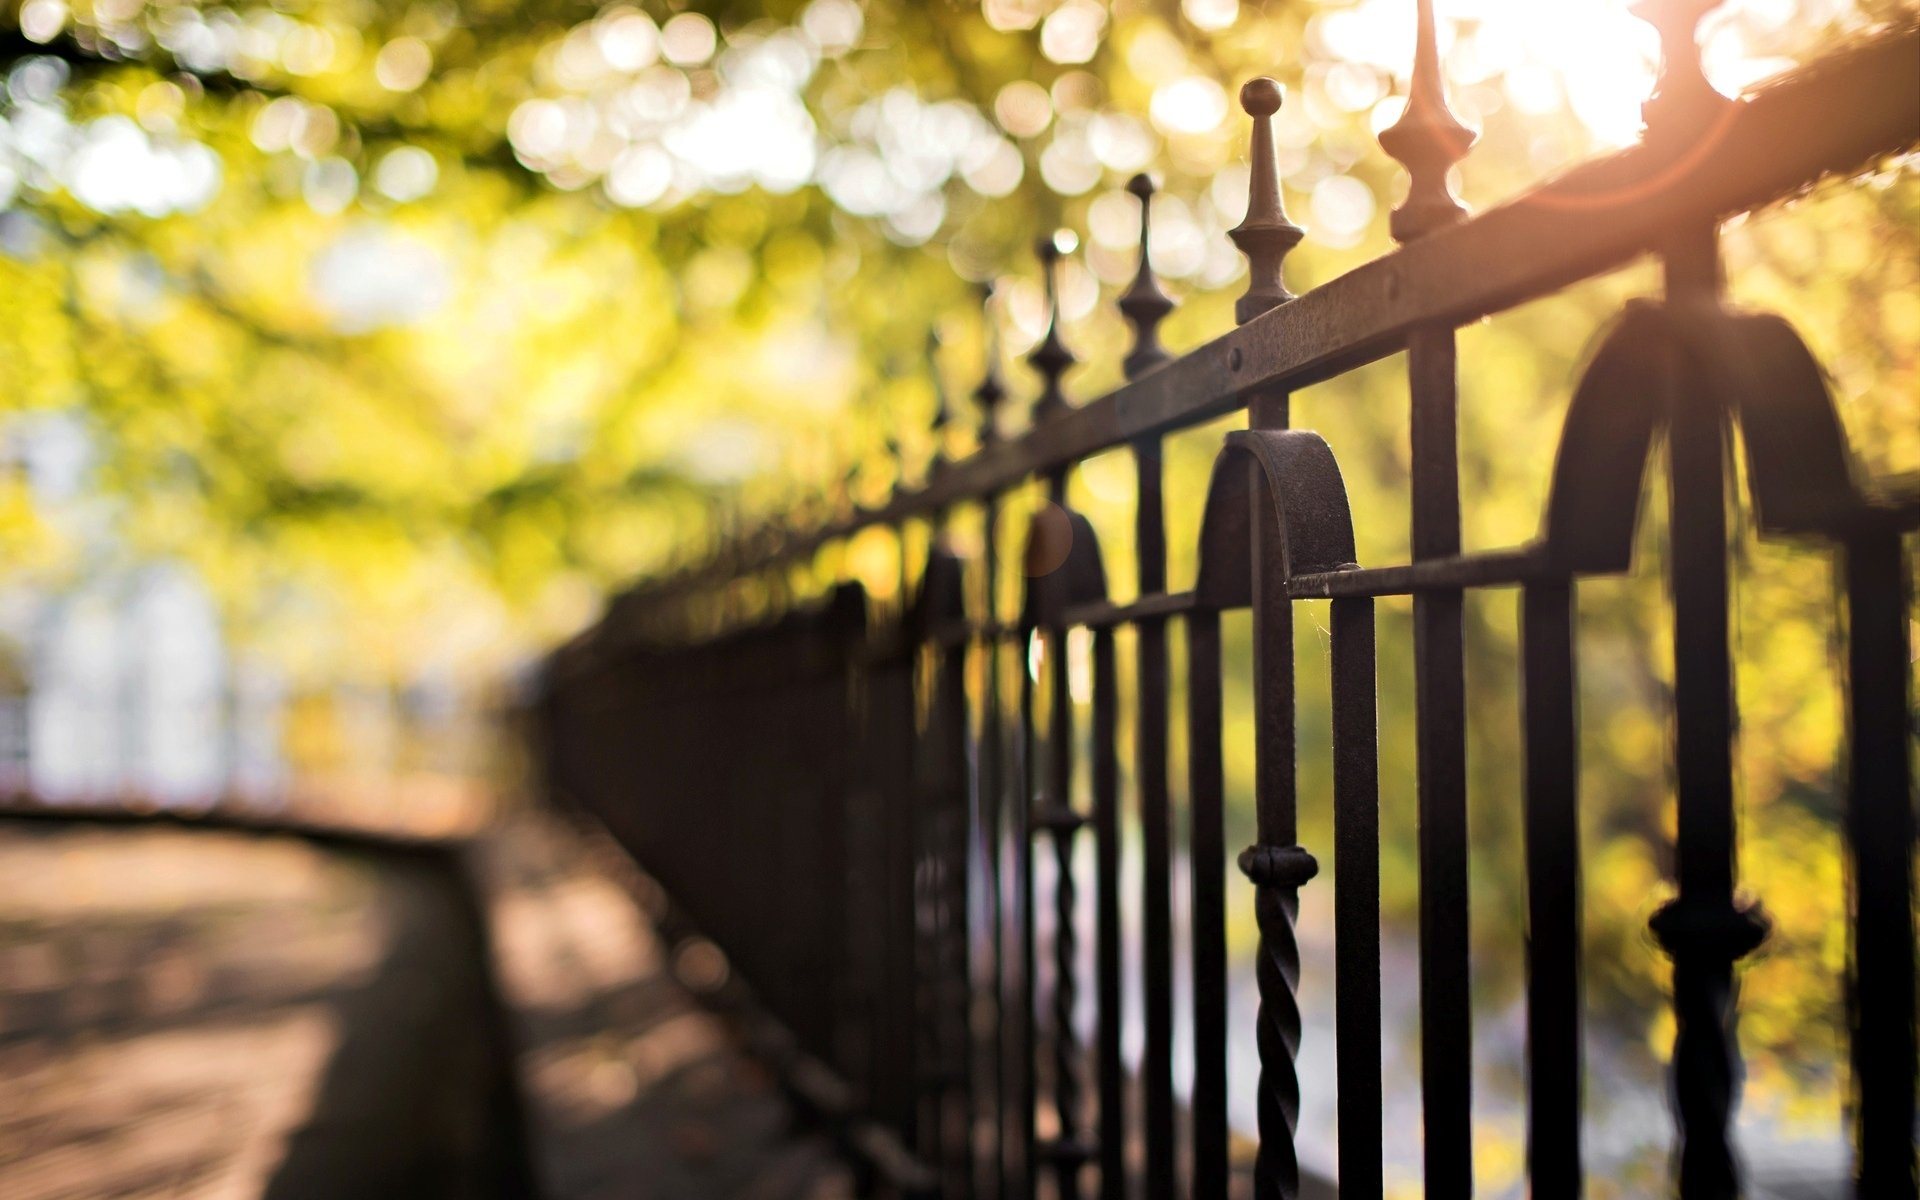 close up fence fencing blur bokeh background tree wallpaper widescreen full screen hd wallpapers macro